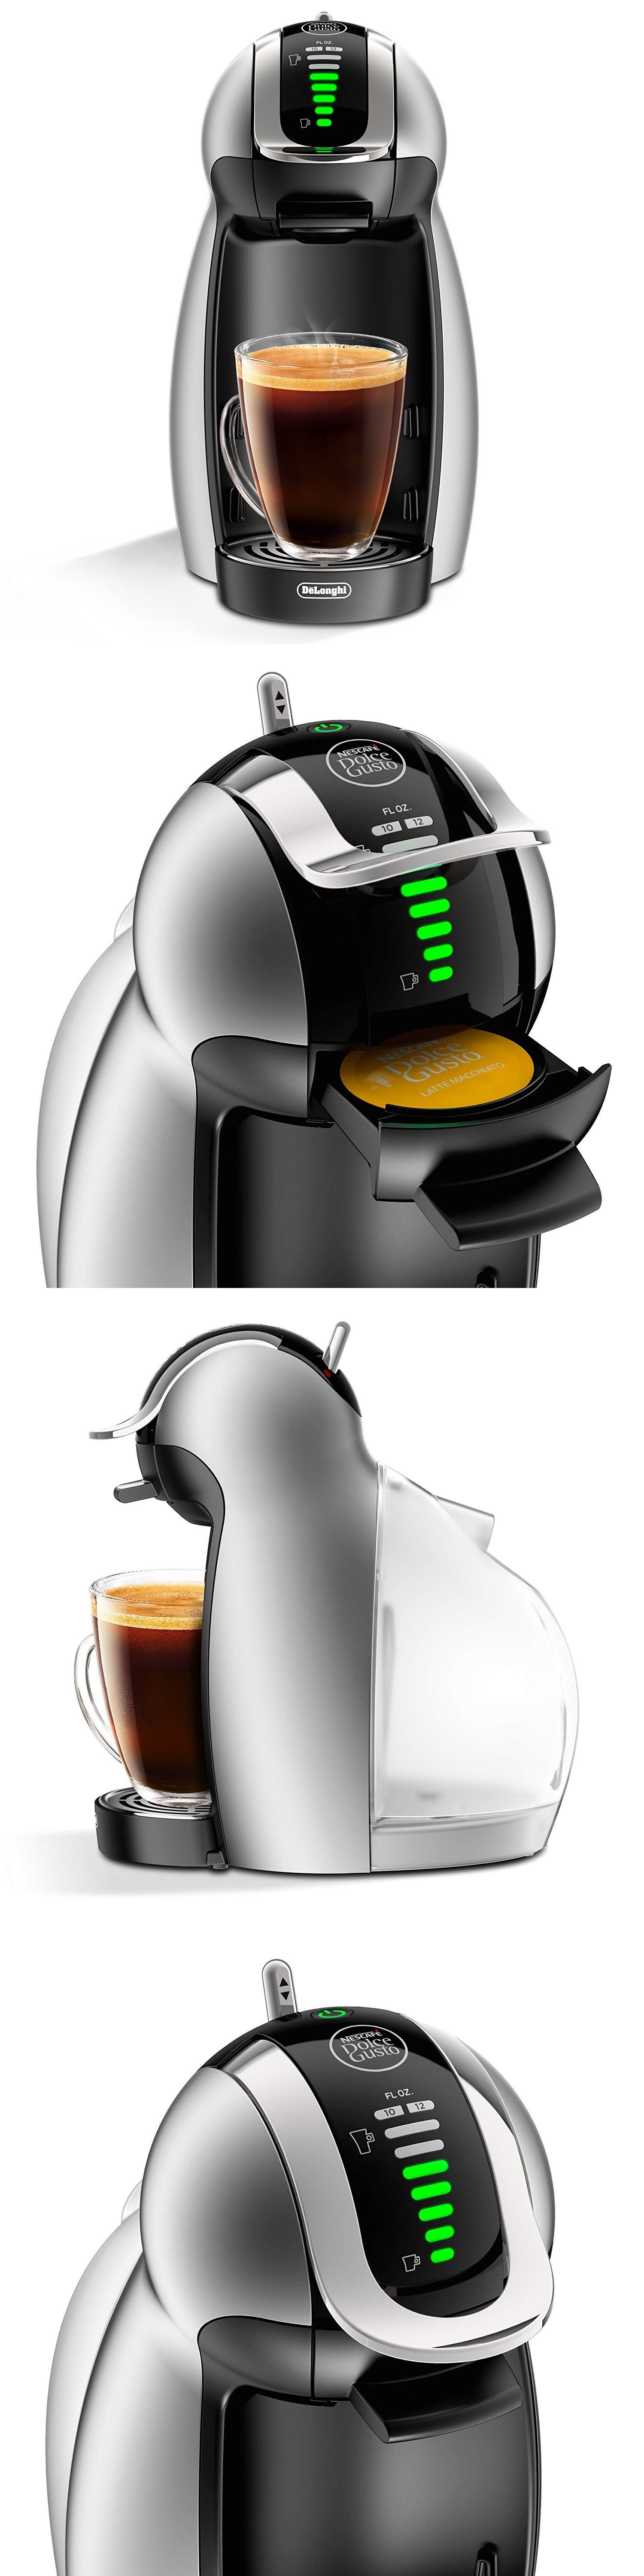 Filter Coffee Machines 184665 [Sale] Nescafe Dolce Gusto